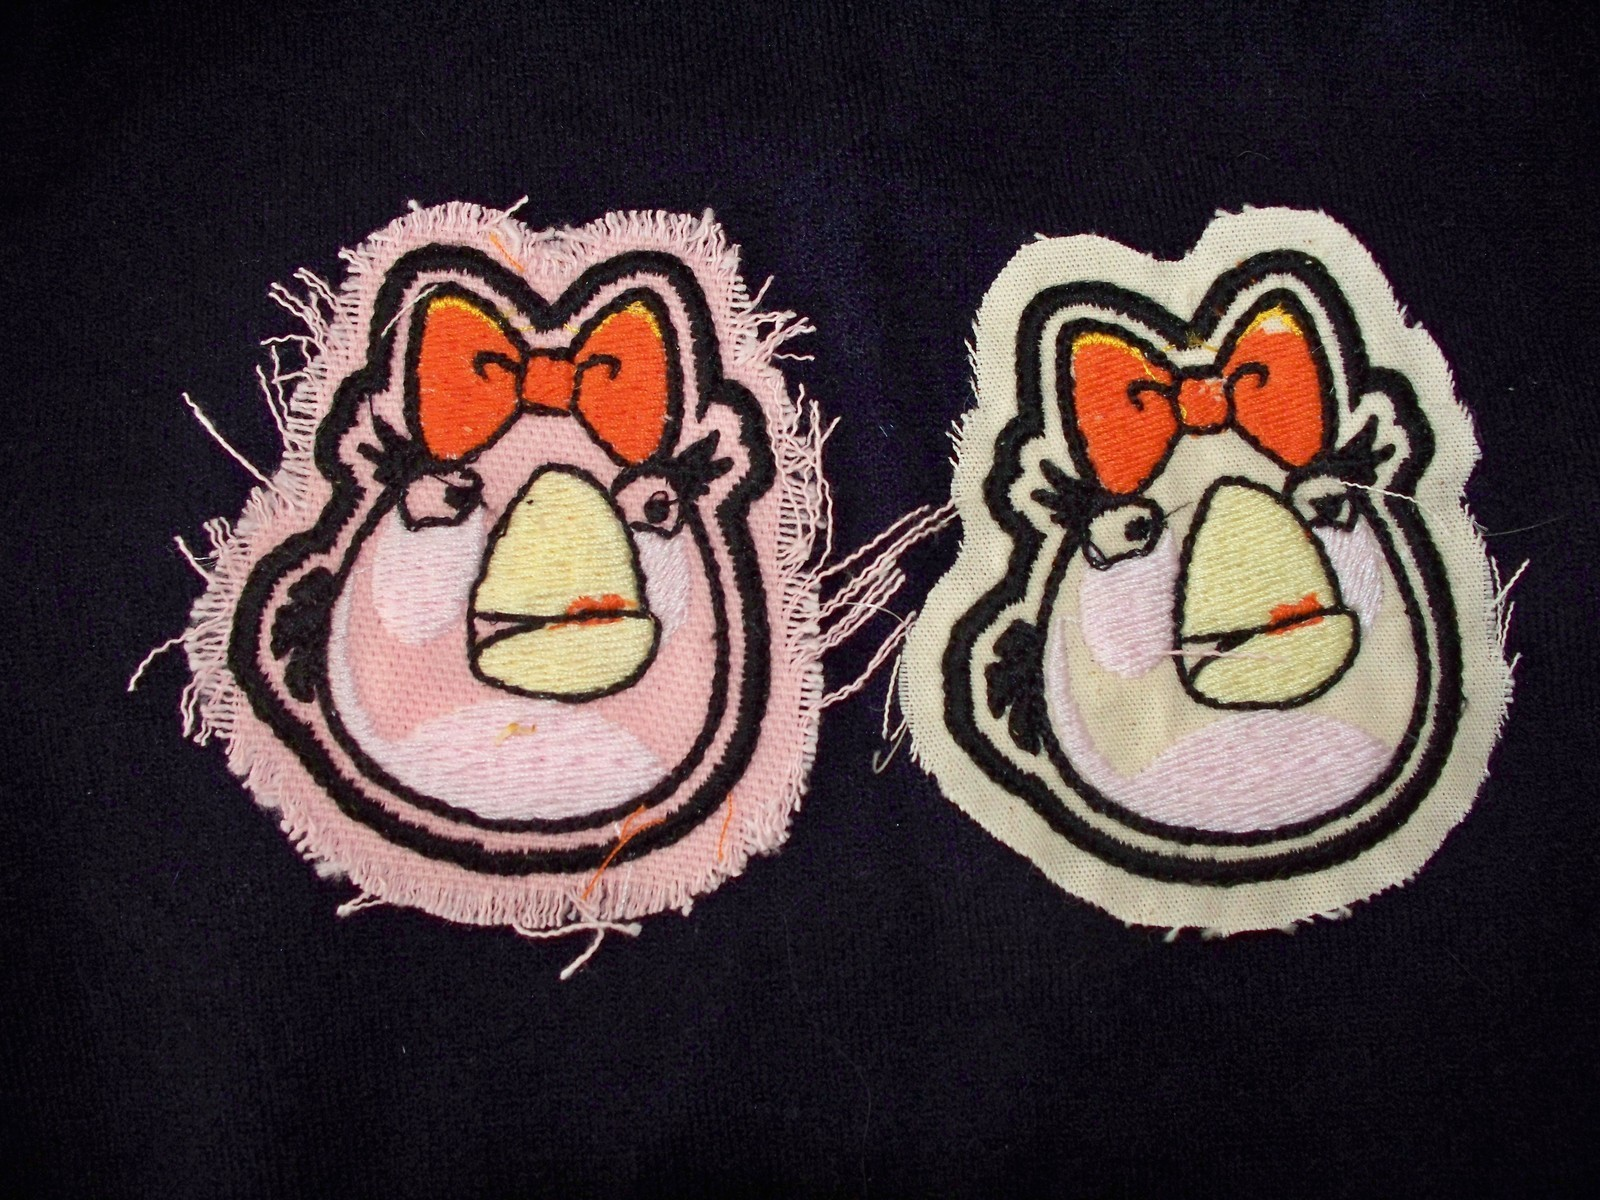 2 Angry Bird IRON ON Appliques 1 with pink backing 1 w cream backing 3 X 2.5 - $5.99